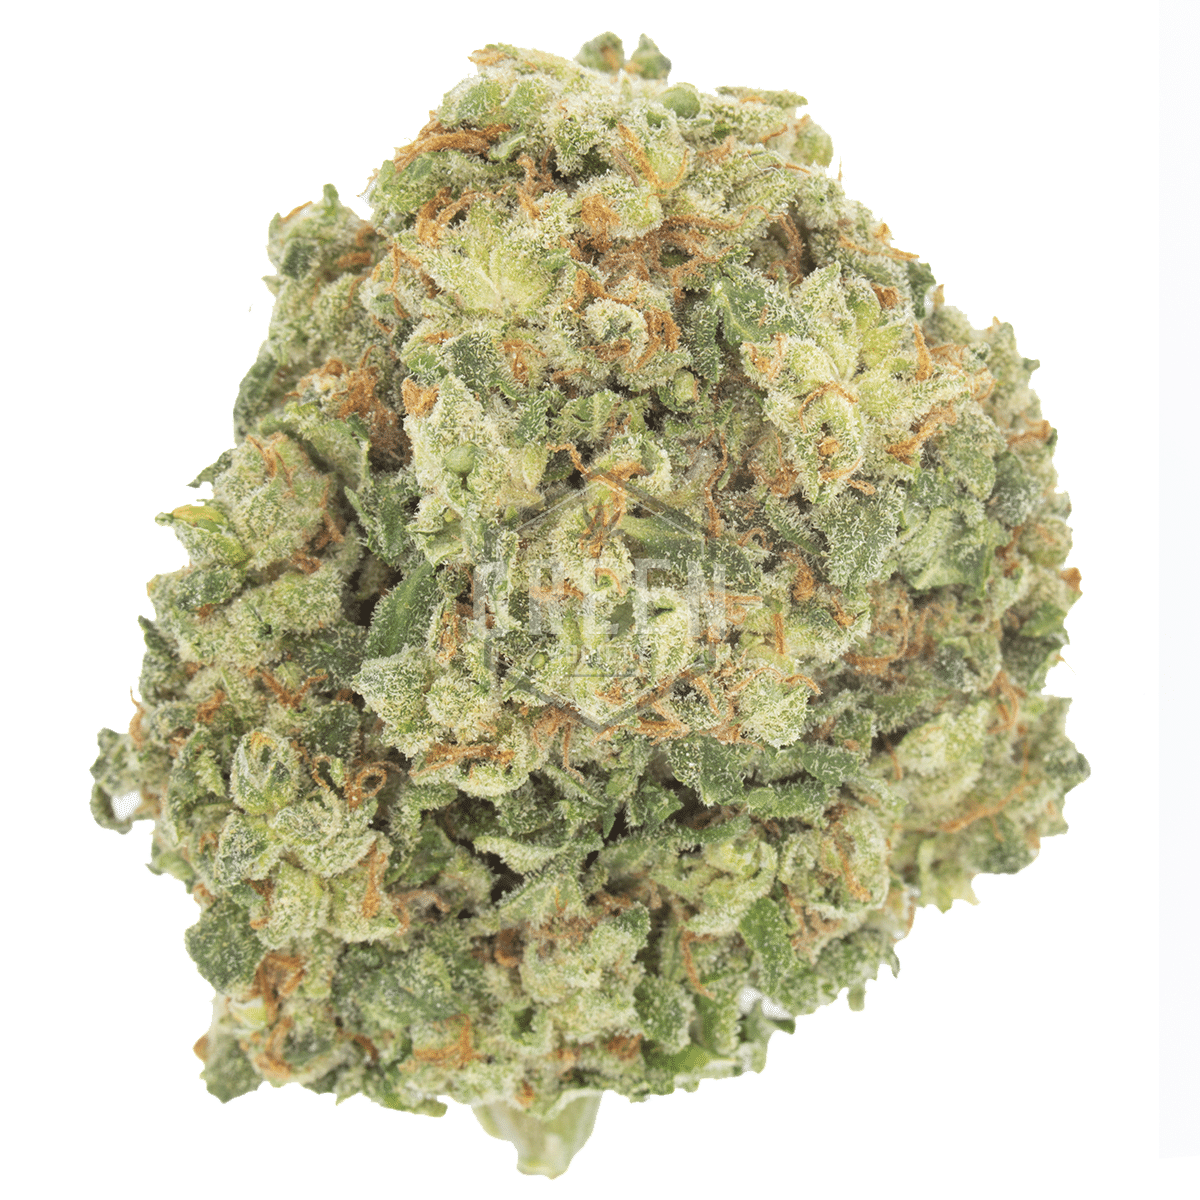 Lemon Diesel by Green Society - Image © 2018 Green Society. All Rights Reserved.